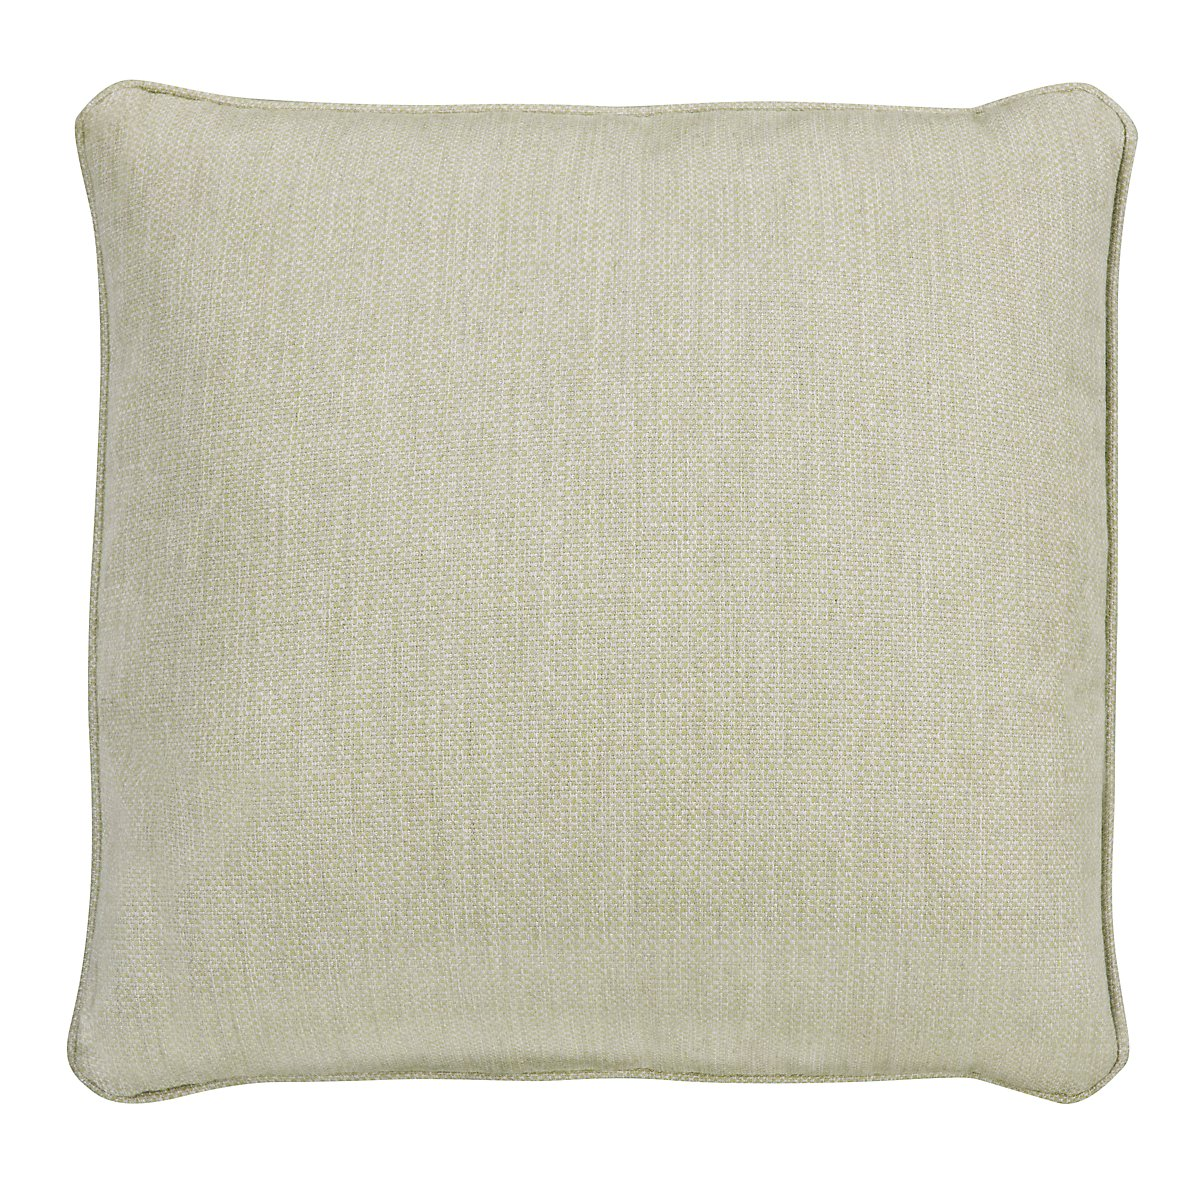 "Moka Light Green 18"" Indoor/Outdoor Accent Pillow"